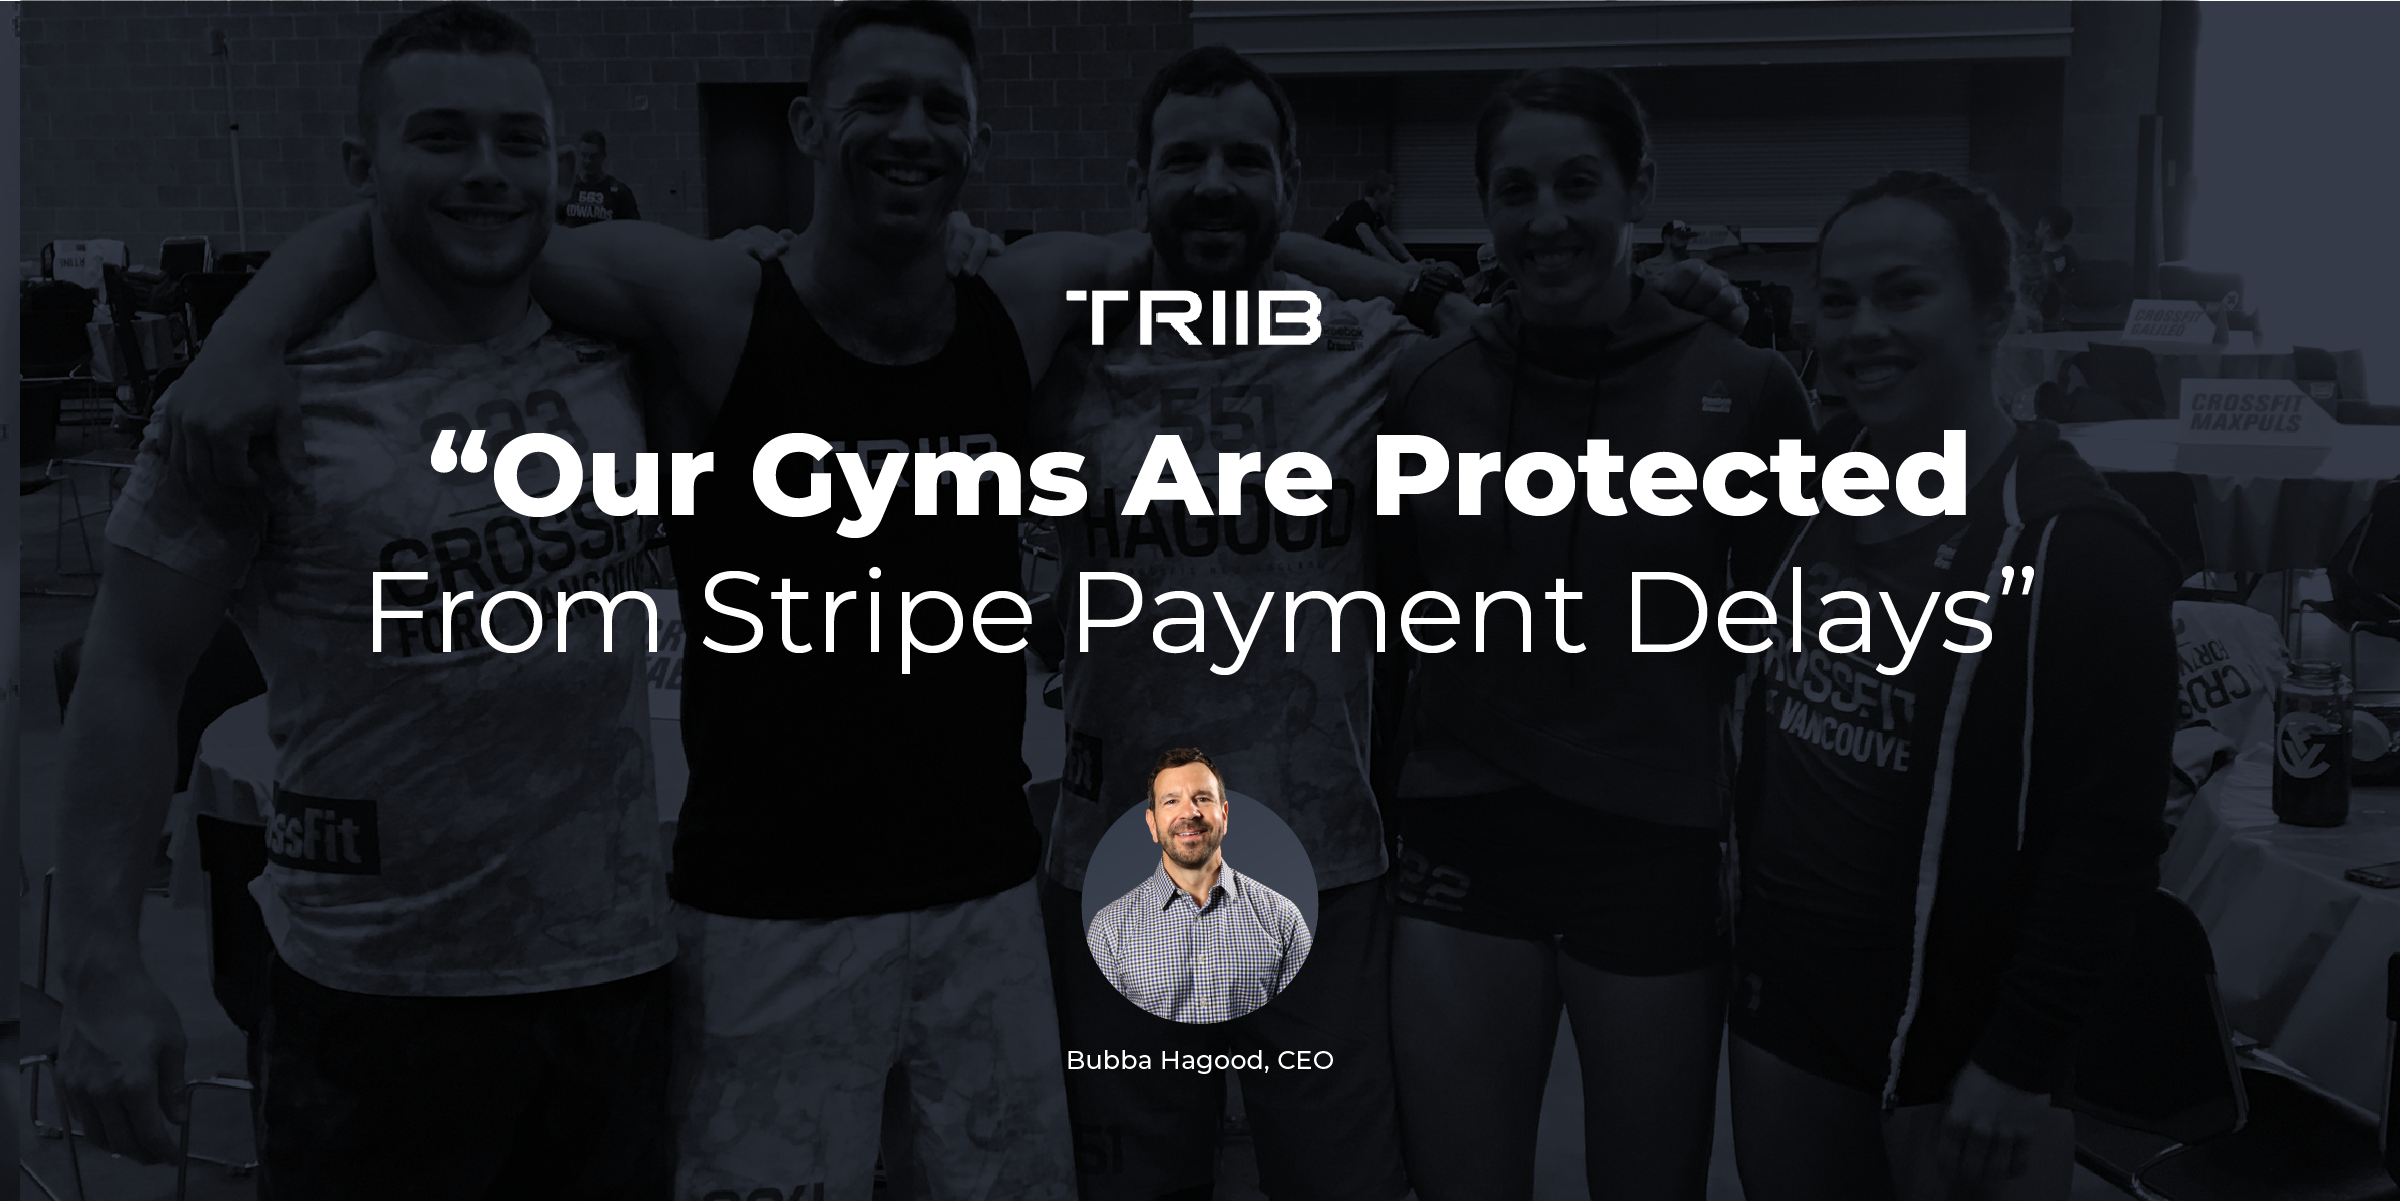 Triib gyms are protected from Stripe payment delays